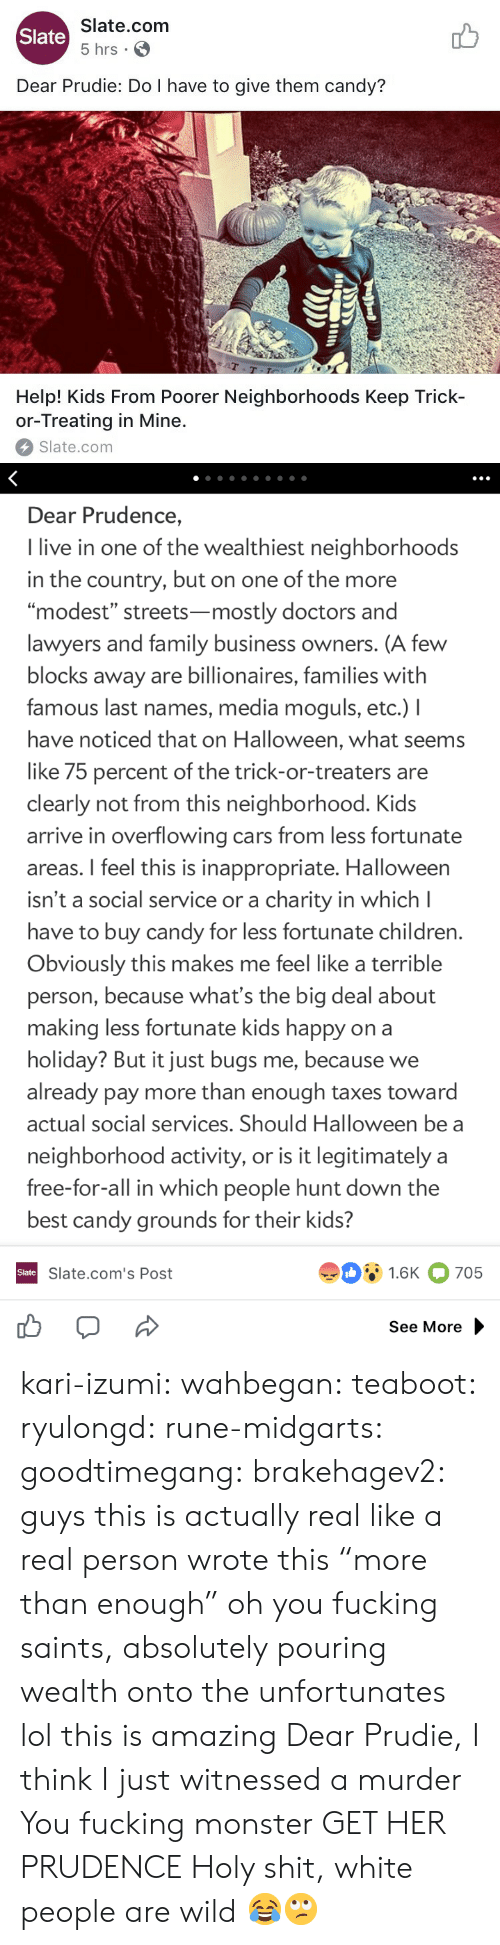 "last names: Slate.com  5 hrs .  Slate  Dear Prudie: Do I have to give them candy?  aT  T-T  Help! Kids From Poorer Neighborhoods Keep Trick-  or-Treating in Mine.  Slate.com   Dear Prudence,  I live in one of the wealthiest neighborhoods  in the country, but on one of the more  ""modest"" streets-mostly doctors and  lawyers and family business owners. (A few  blocks away are billionaires, families with  famous last names, media moguls, etc.) I  have noticed that on Halloween, what seems  like 75 percent of the trick-or-treaters are  clearly not from this neighborhood. Kids  arrive in overflowing cars from less fortunate  areas. I feel this is inappropriate. Halloween  isn't a social service or a charity in which l  have to buy candy for less fortunate children  Obviously this makes me feel like a terrible  person, because what's the big deal about  making less fortunate kids happy on a  holiday? But it just bugs me, because we  already pay more than enough taxes toward  actual social services. Should Halloween be a  neighborhood activity, or is it legitimately a  free-for-all in which people hunt down the  best candy grounds for their kids?  91.6K 705  Slate  Slate.com's Post  See More kari-izumi: wahbegan:  teaboot:  ryulongd:  rune-midgarts:  goodtimegang:  brakehagev2:  guys this is actually real like a real person wrote this  ""more than enough"" oh you fucking saints, absolutely pouring wealth onto the unfortunates   lol this is amazing   Dear Prudie, I think I just witnessed a murder  You fucking monster  GET HER PRUDENCE   Holy shit, white people are wild 😂🙄"